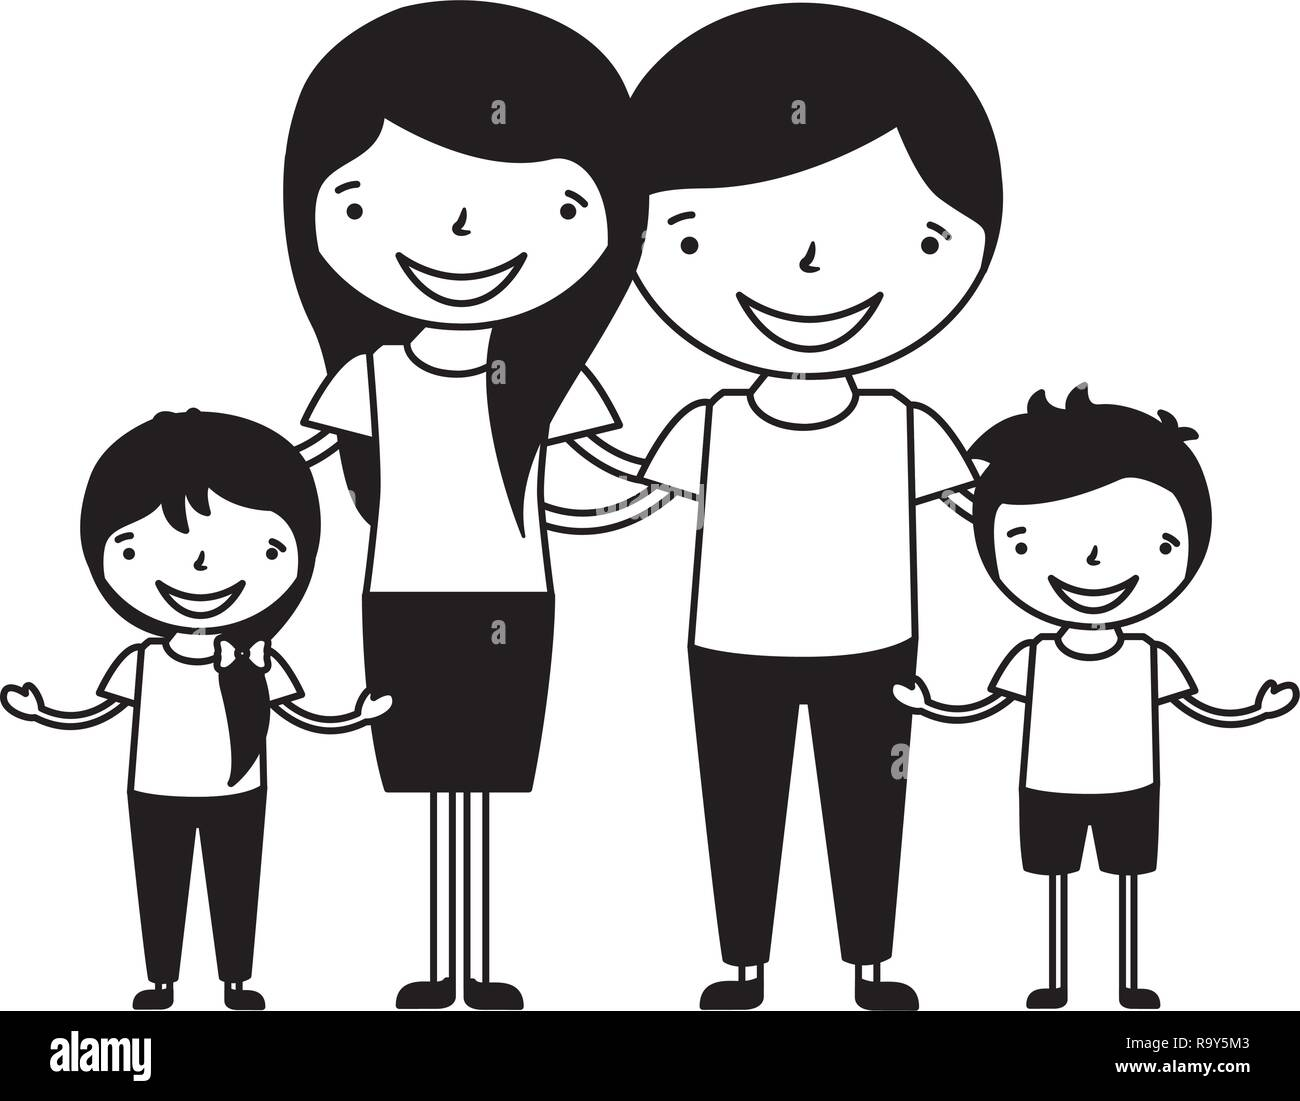 Family Cartoon High Resolution Stock Photography And Images Alamy